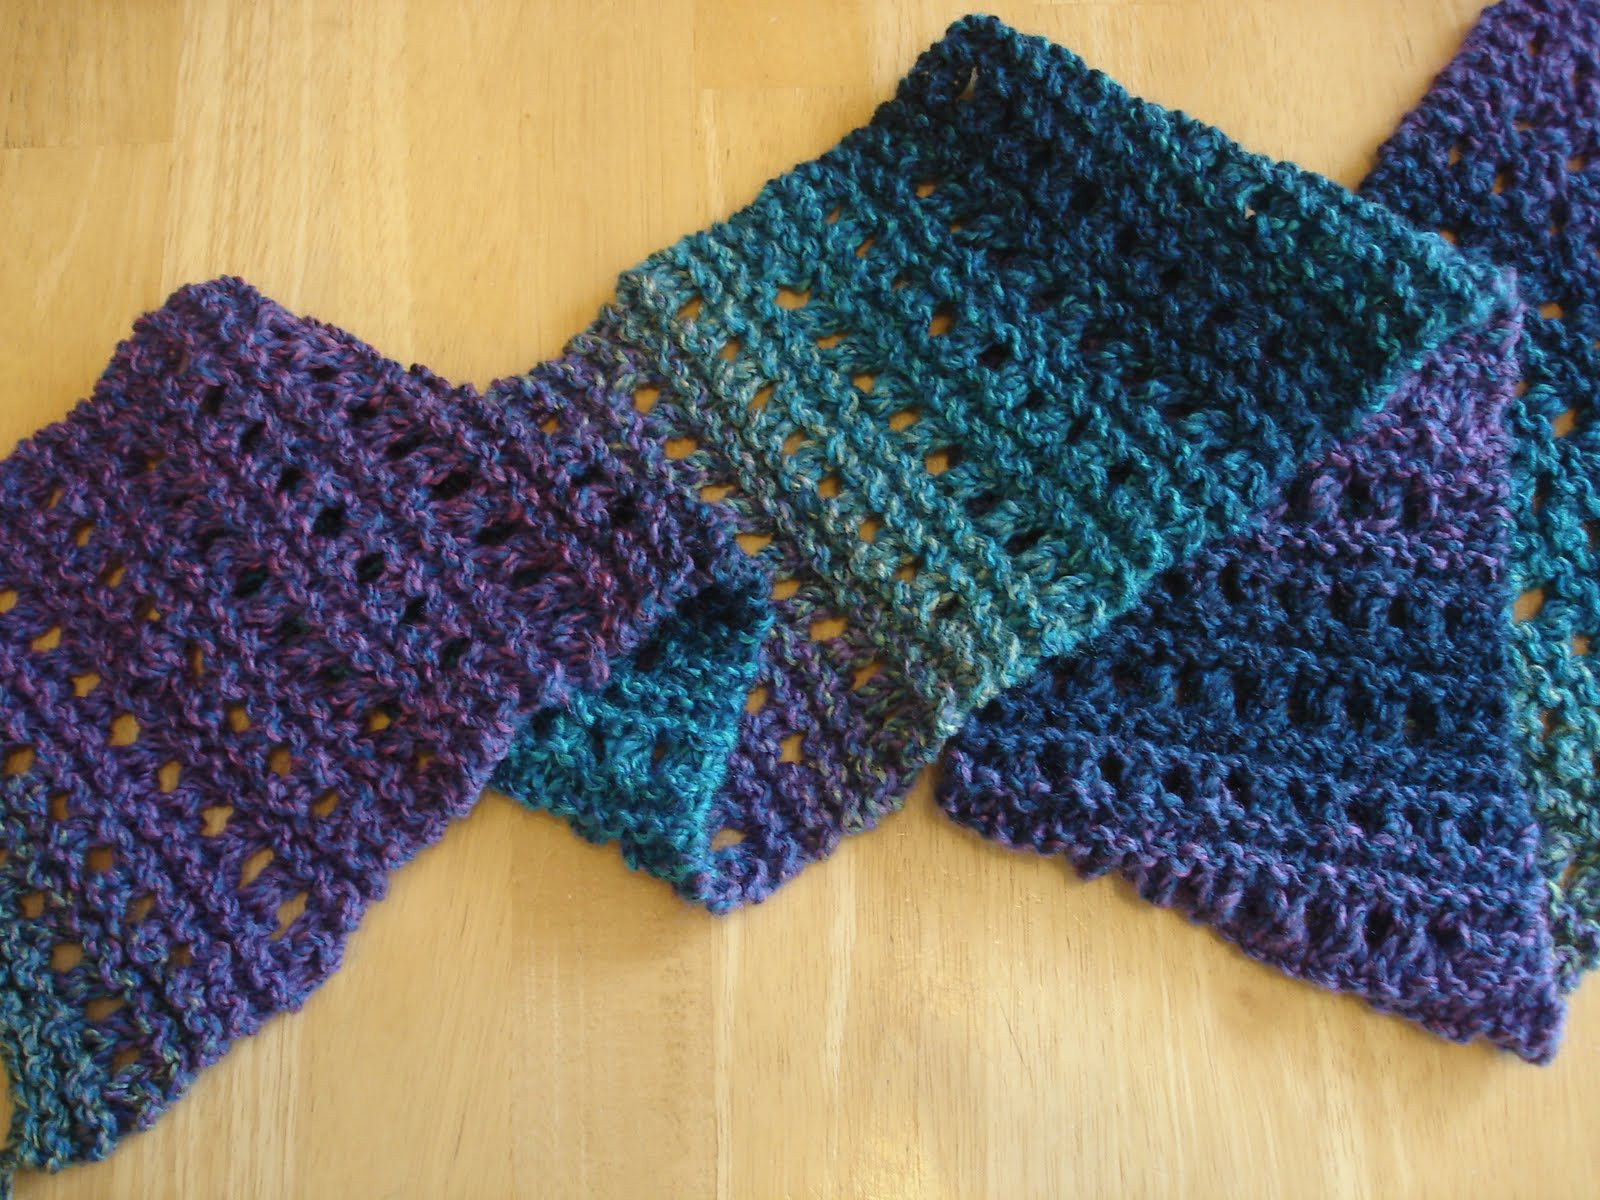 Lovely Free Crochet Scarf Patterns for Beginners Crochet and Free Knitting and Crochet Patterns Of Marvelous 44 Ideas Free Knitting and Crochet Patterns